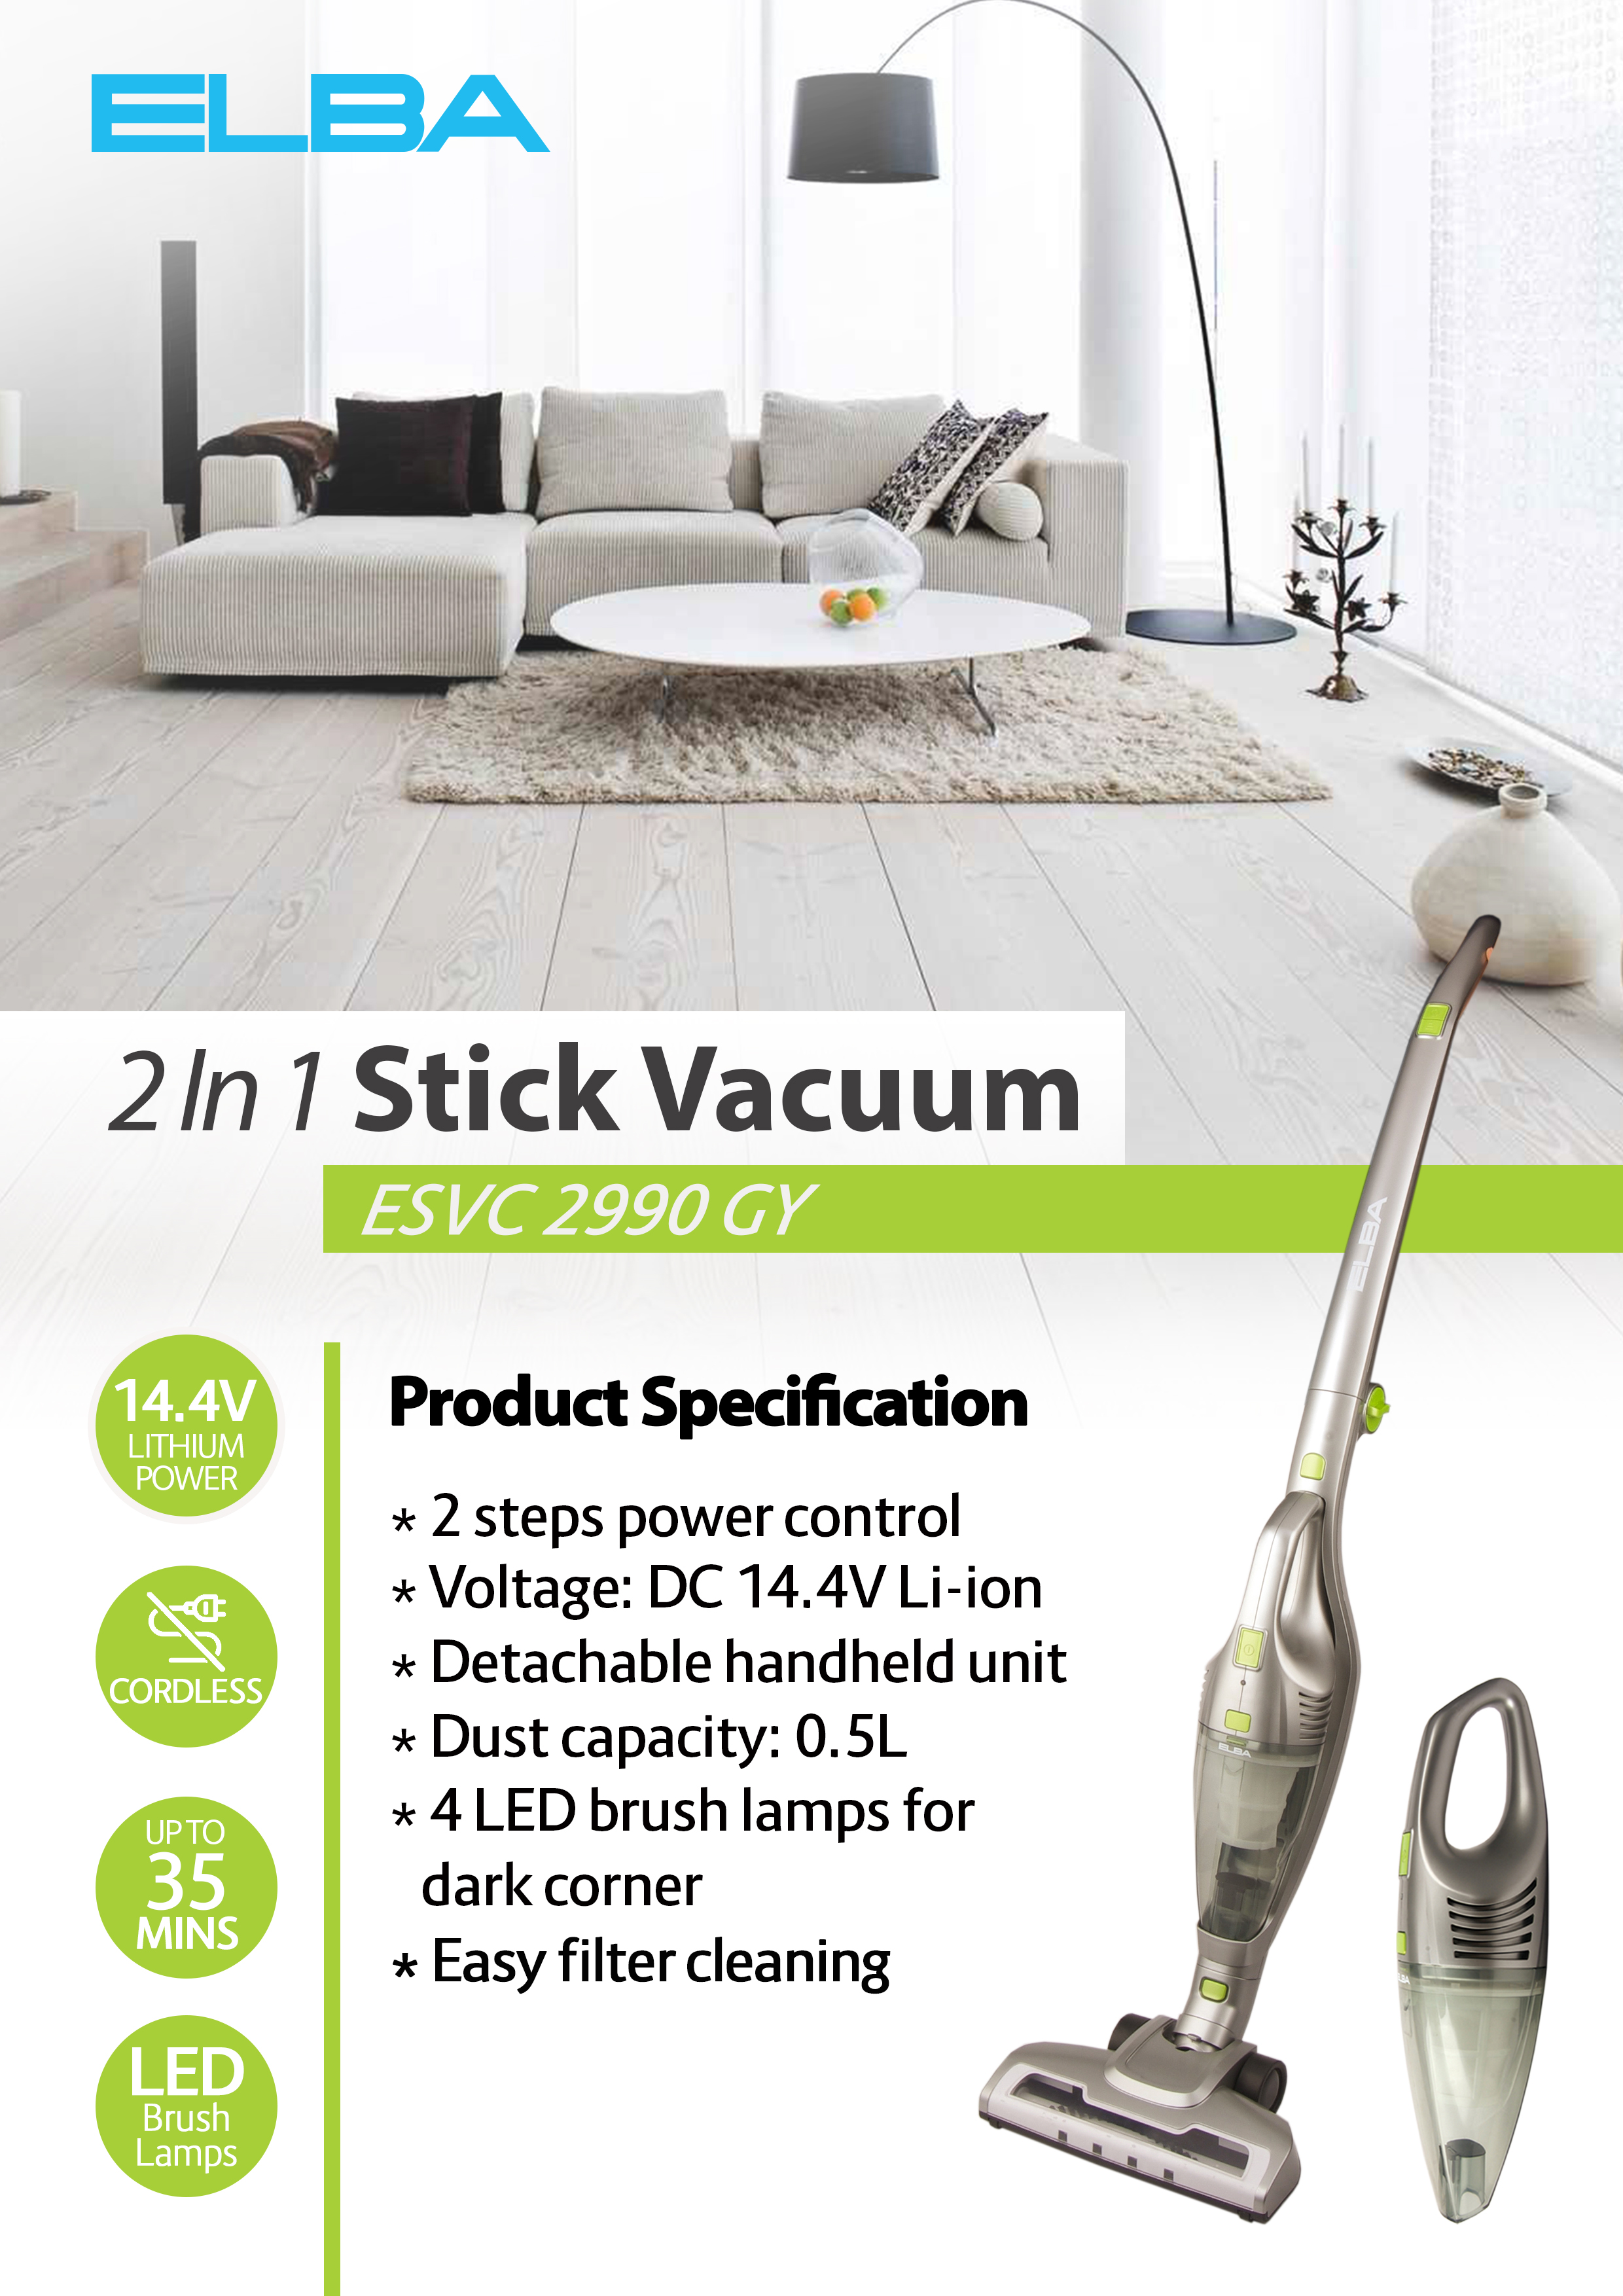 ELBA ESVC2990GY 2-In-1 Cordless Stick Vacuum Cleaner | Lazada ...